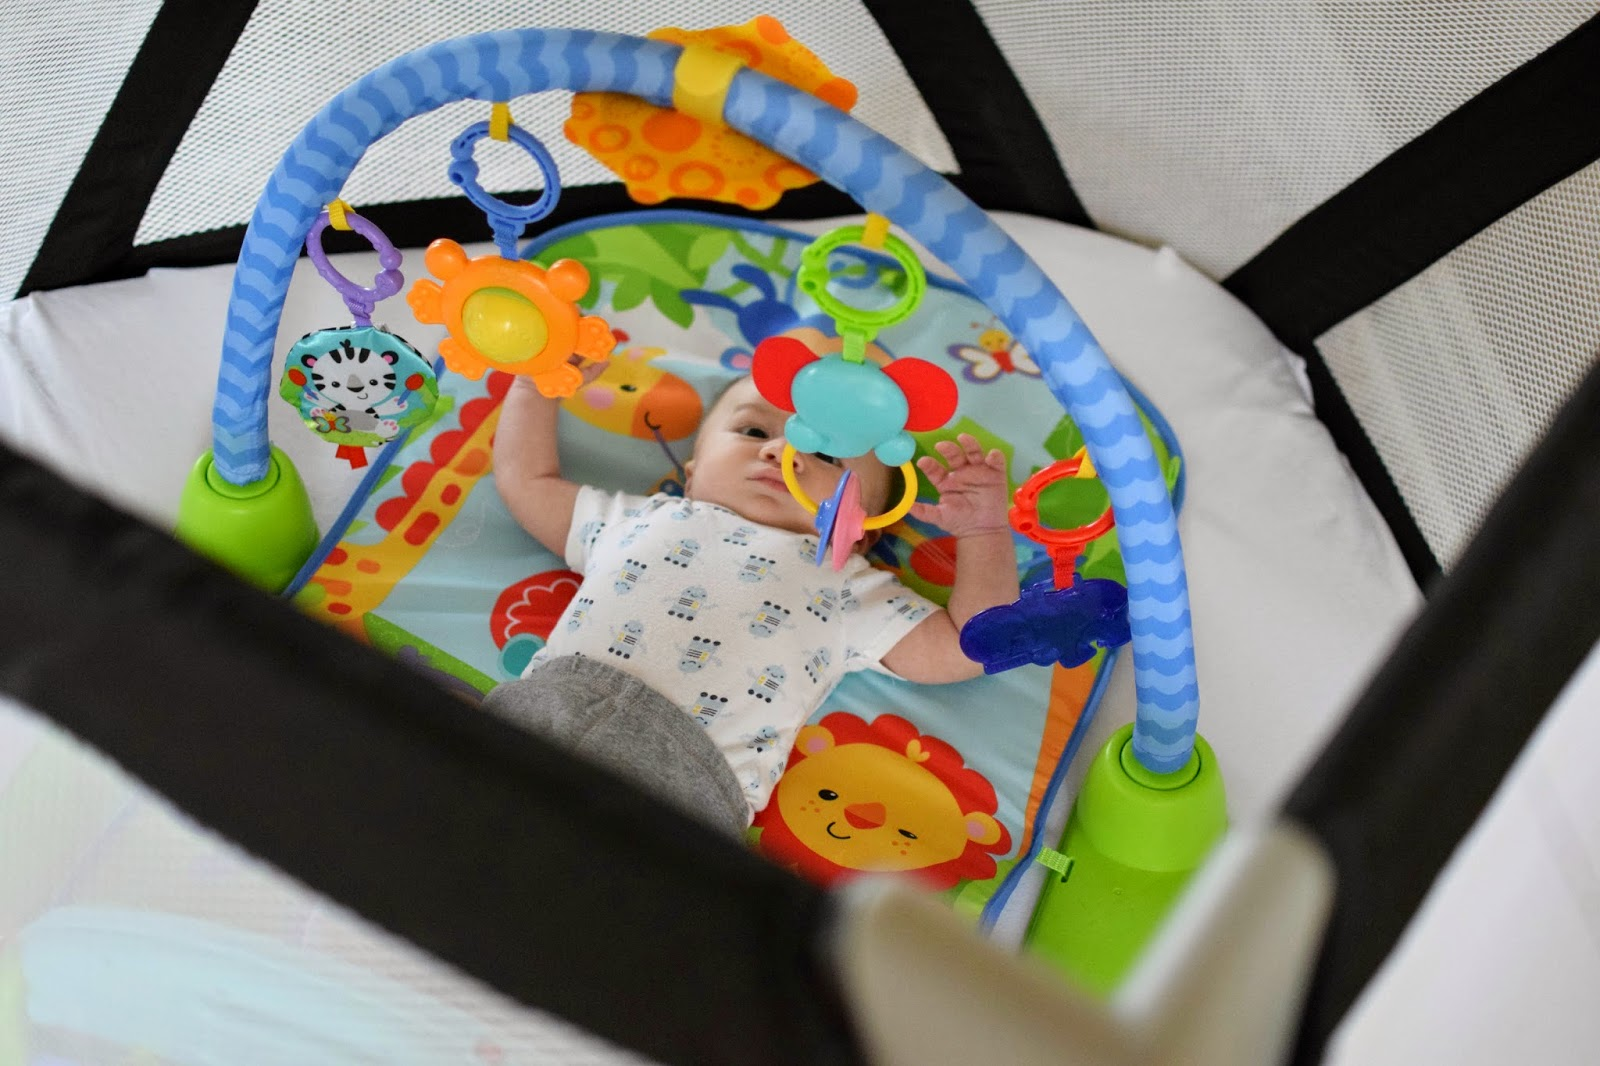 joovy moon room, joovy moon room review, the best big playard